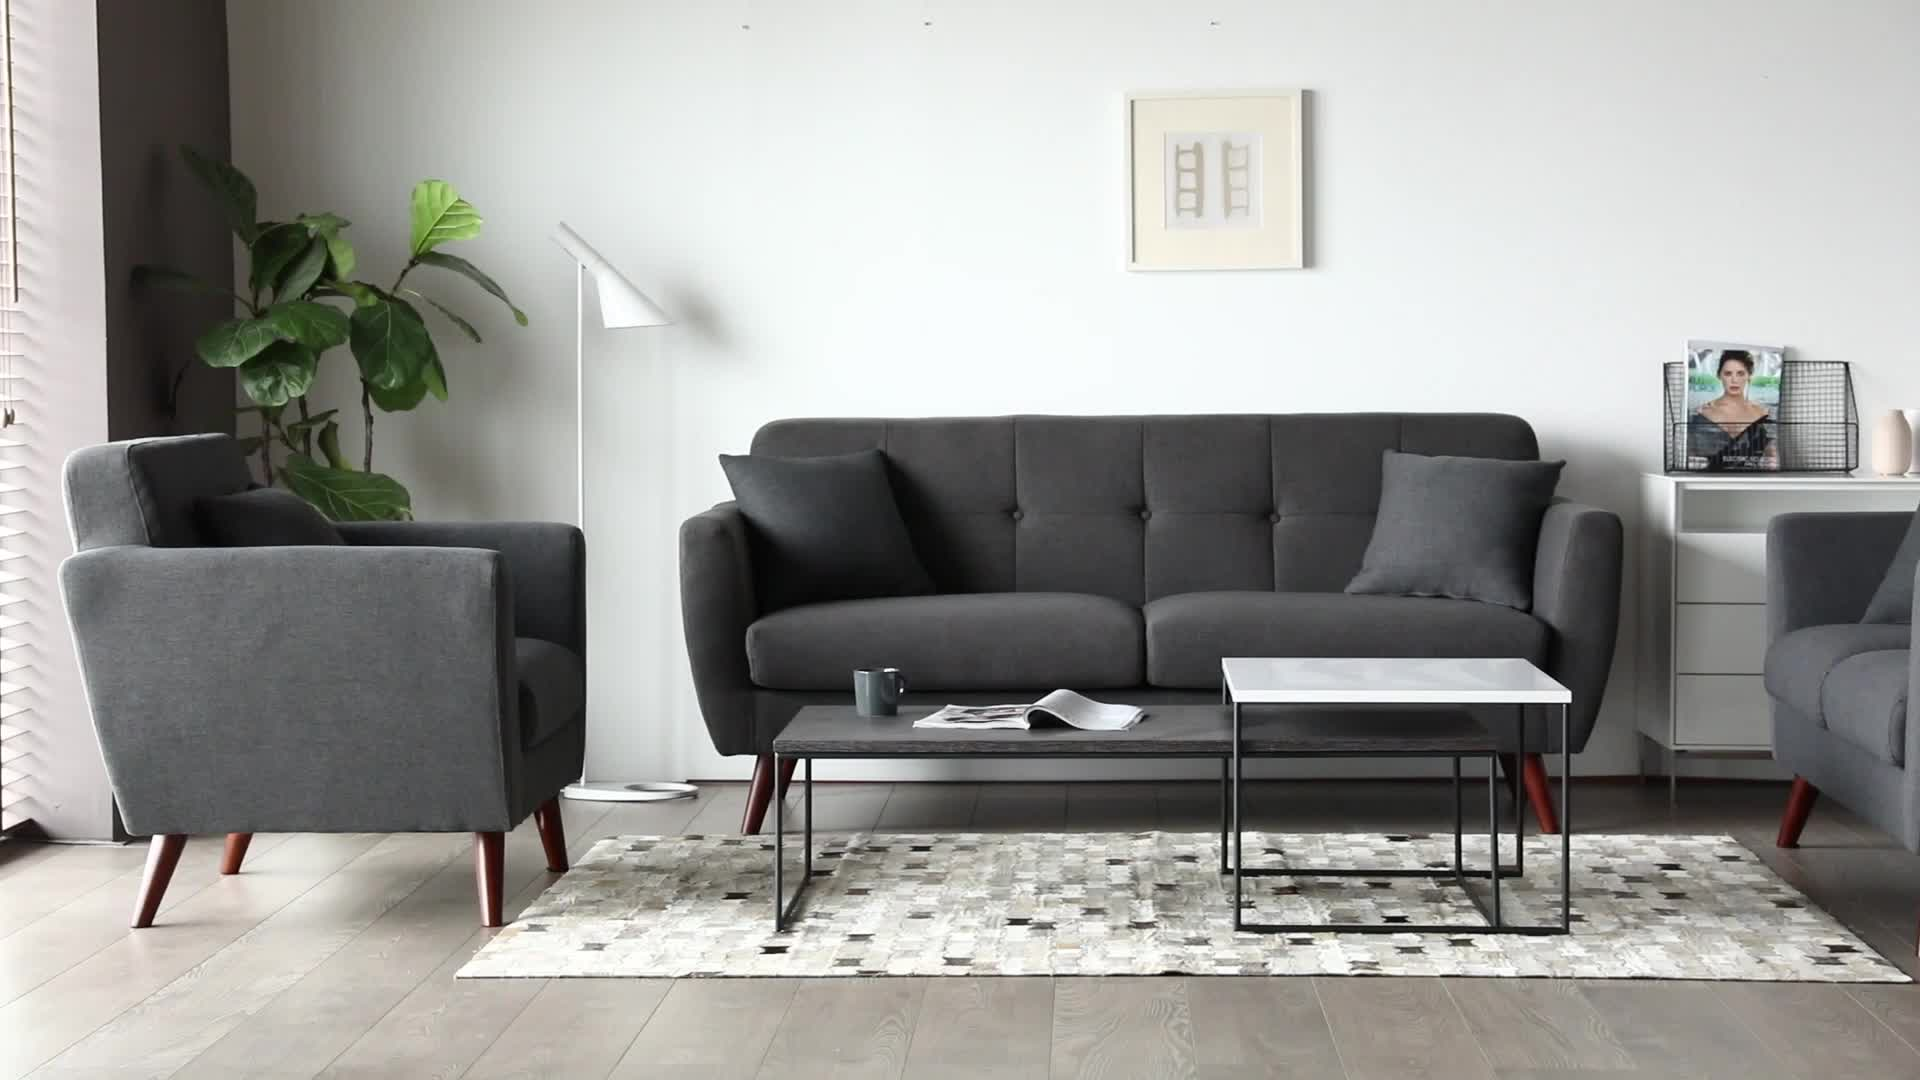 Factory Supply Furniture Office Design 3 Seater Black Fabric Sofa - Buy  Black Fabric Sofa,Fabric Sofa,3 Seater Sofa Product on Alibaba.com